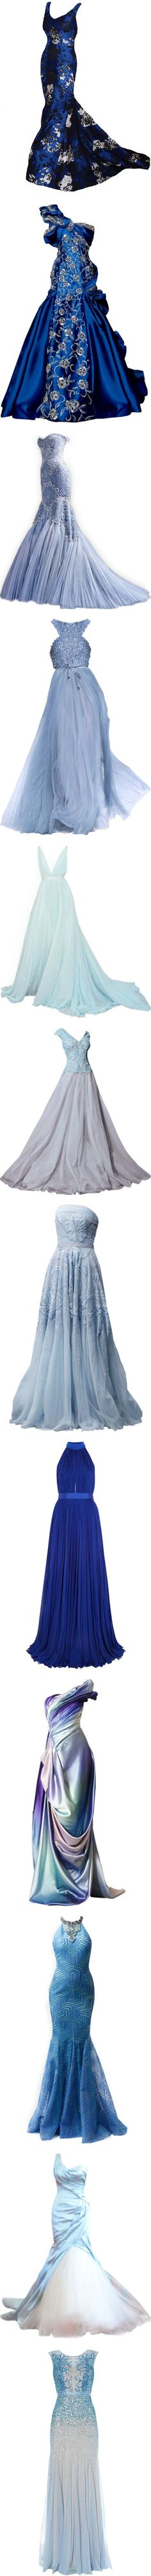 Blue Princess by kari-c on Polyvore featuring dresses, gown, blue, gowns, long dress, blue evening dress, long dresses, blue ball gown, long blue dress and blue gown